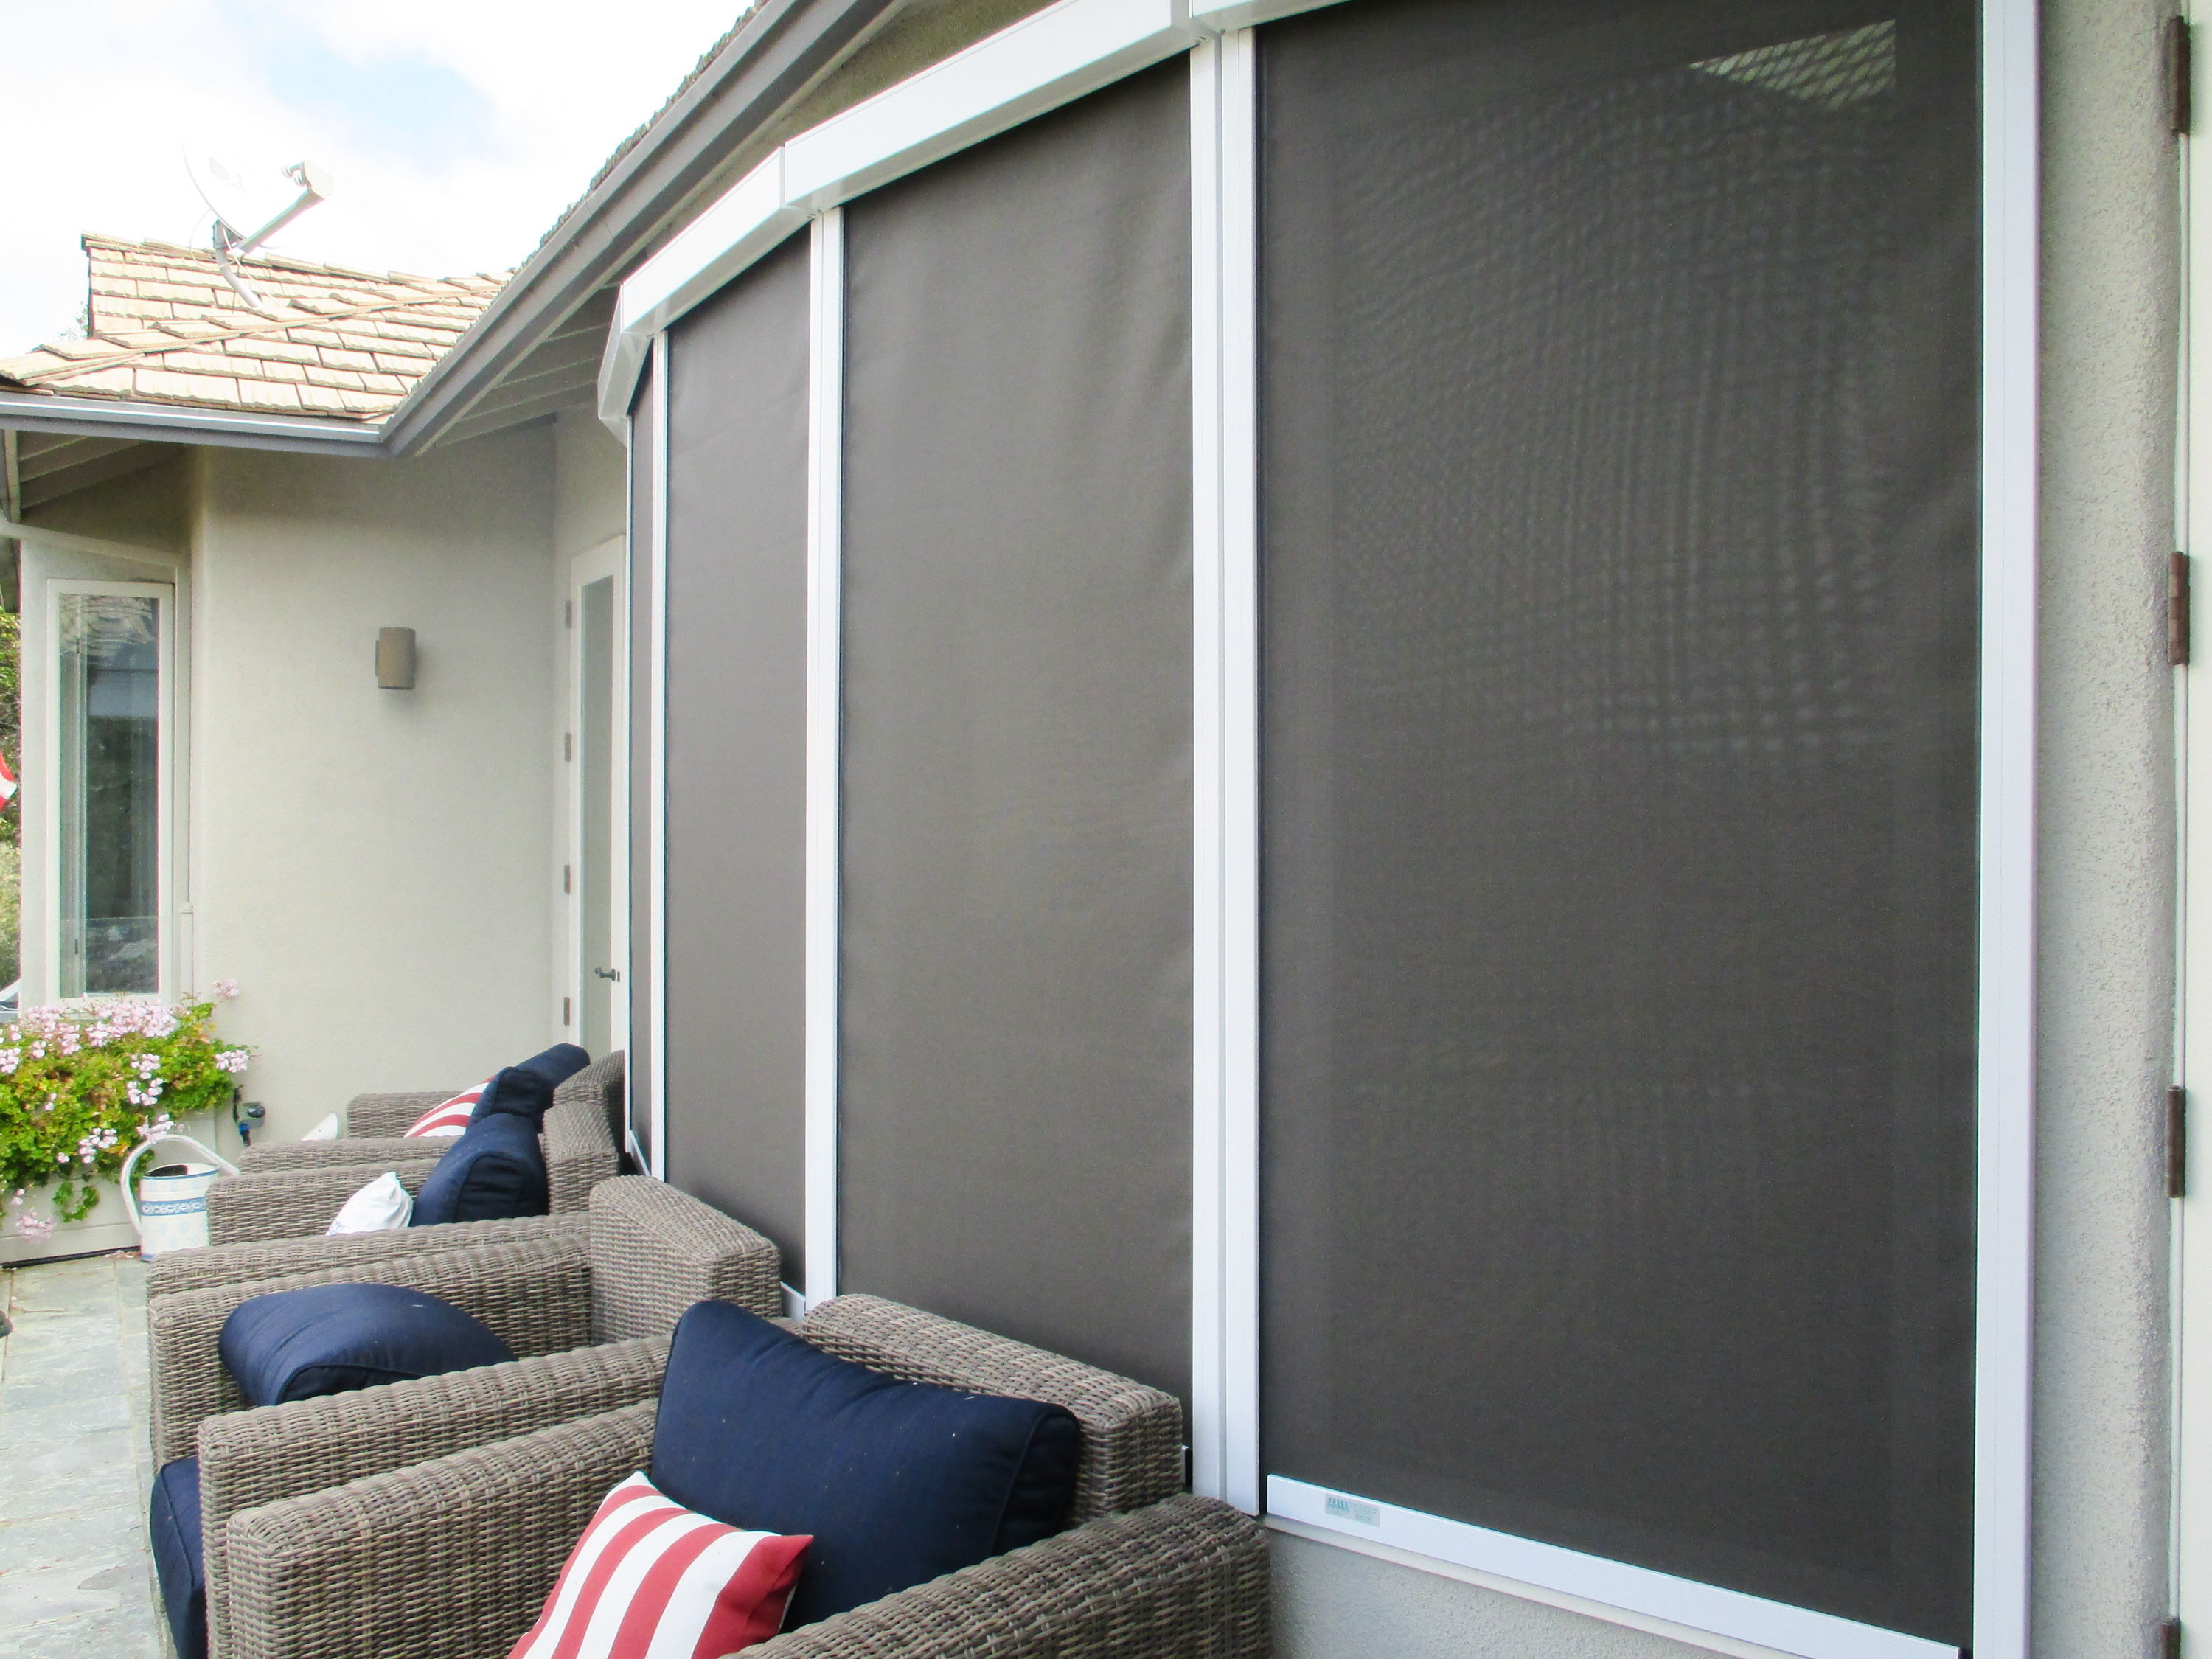 Exterior sun shades for windows -  Motorized Solar Screens Full Shading